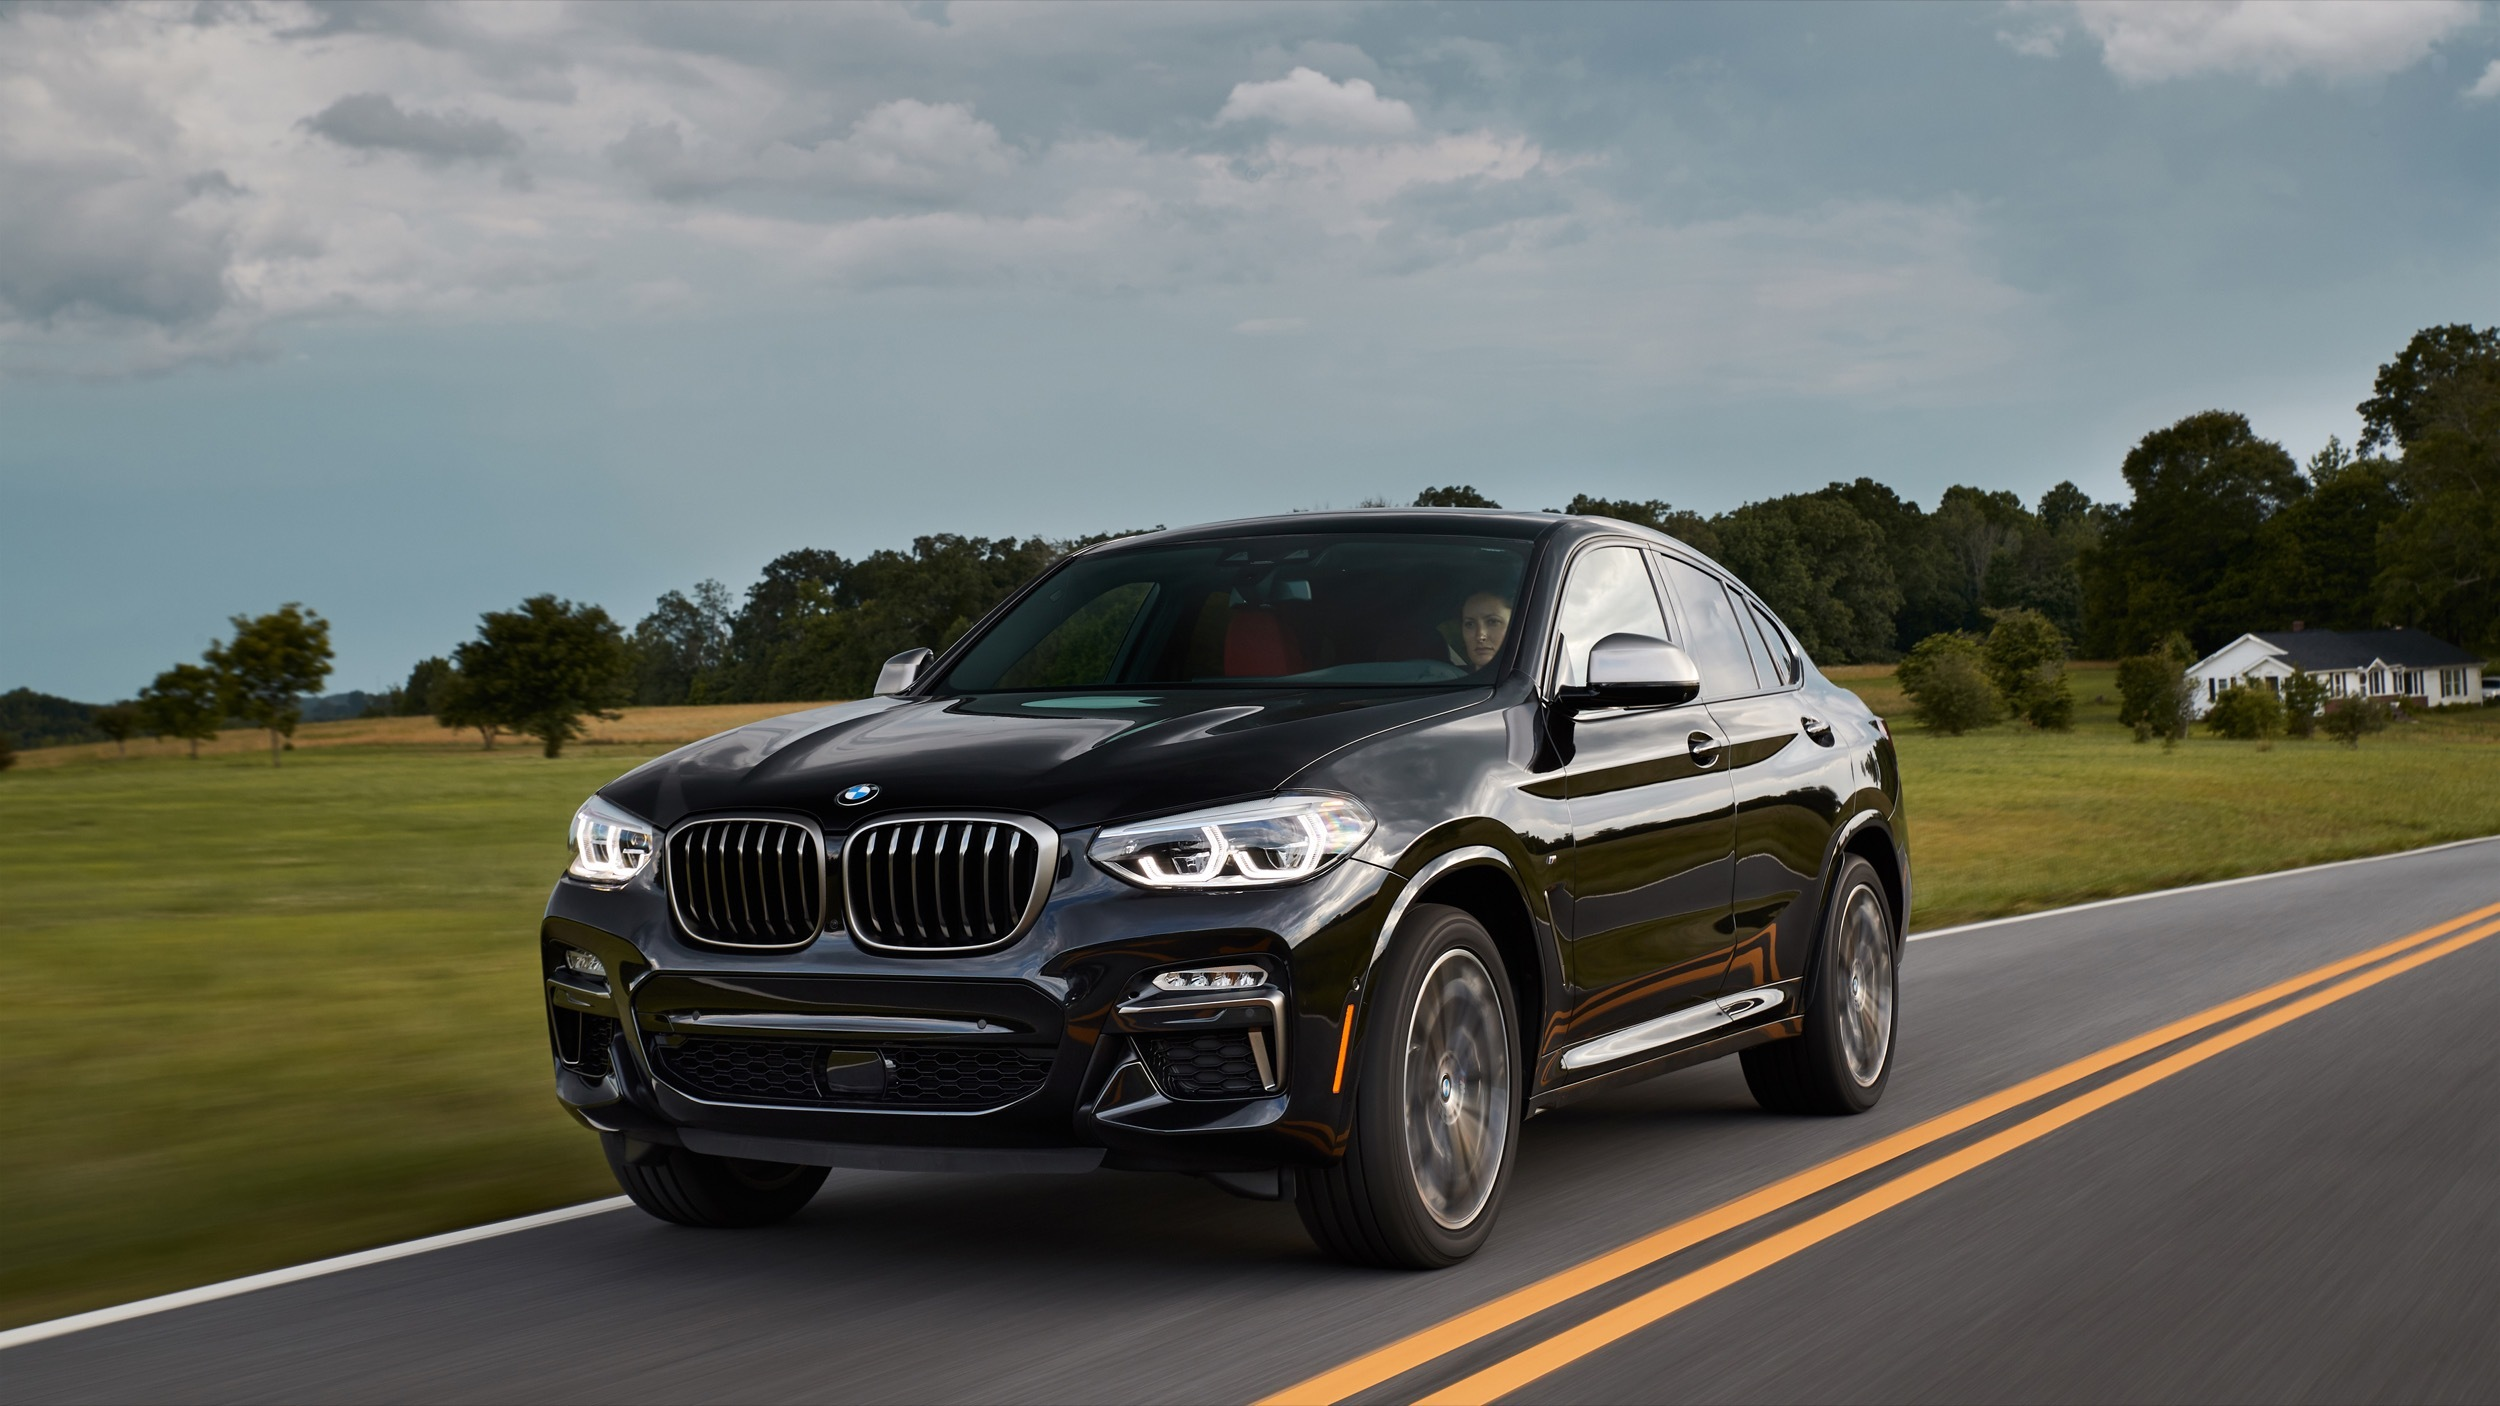 2019 Bmw X4 Review Sacrificing Practicality For Style Autoblog